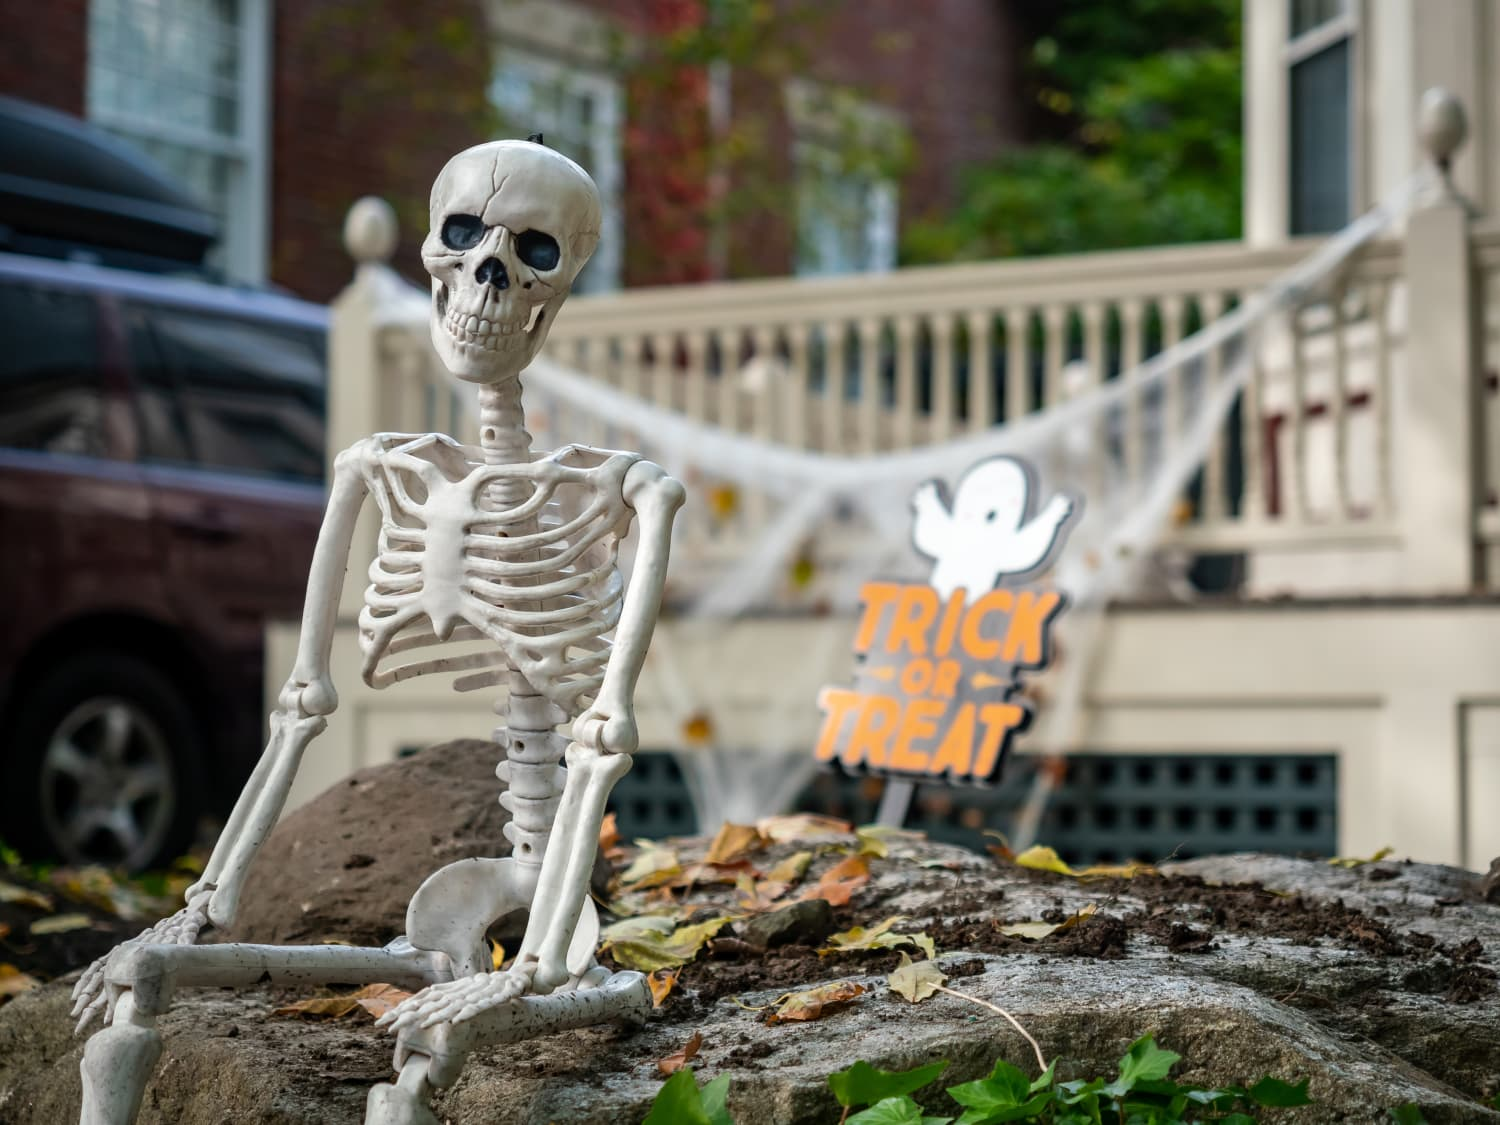 These Halloween Decorations on Twitter Perfectly Sum Up 2020